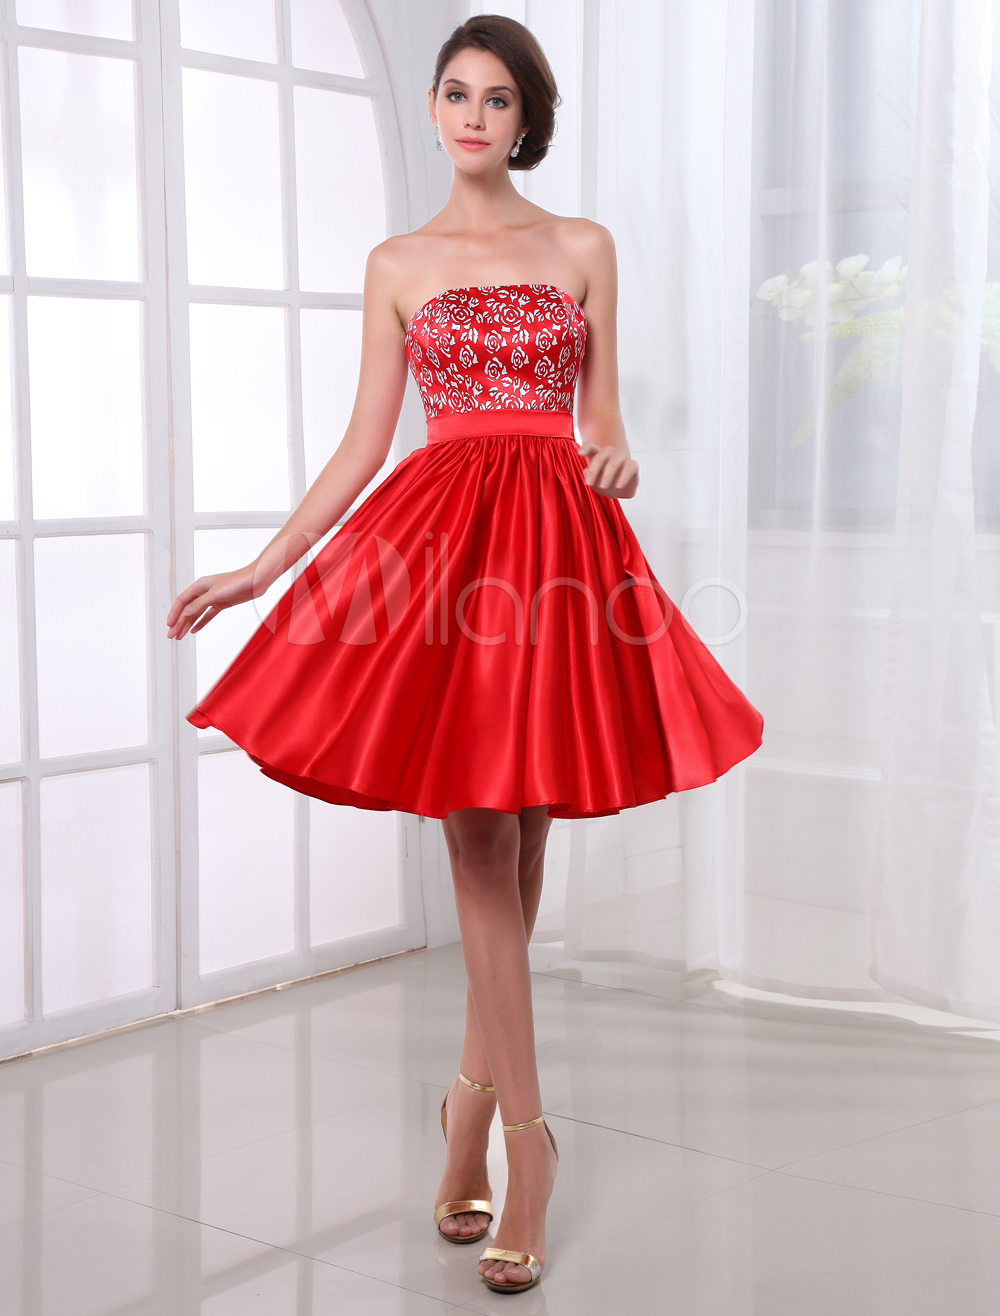 Sweet Red Printed Strapless Knee-Length Trendy Homecoming Dress